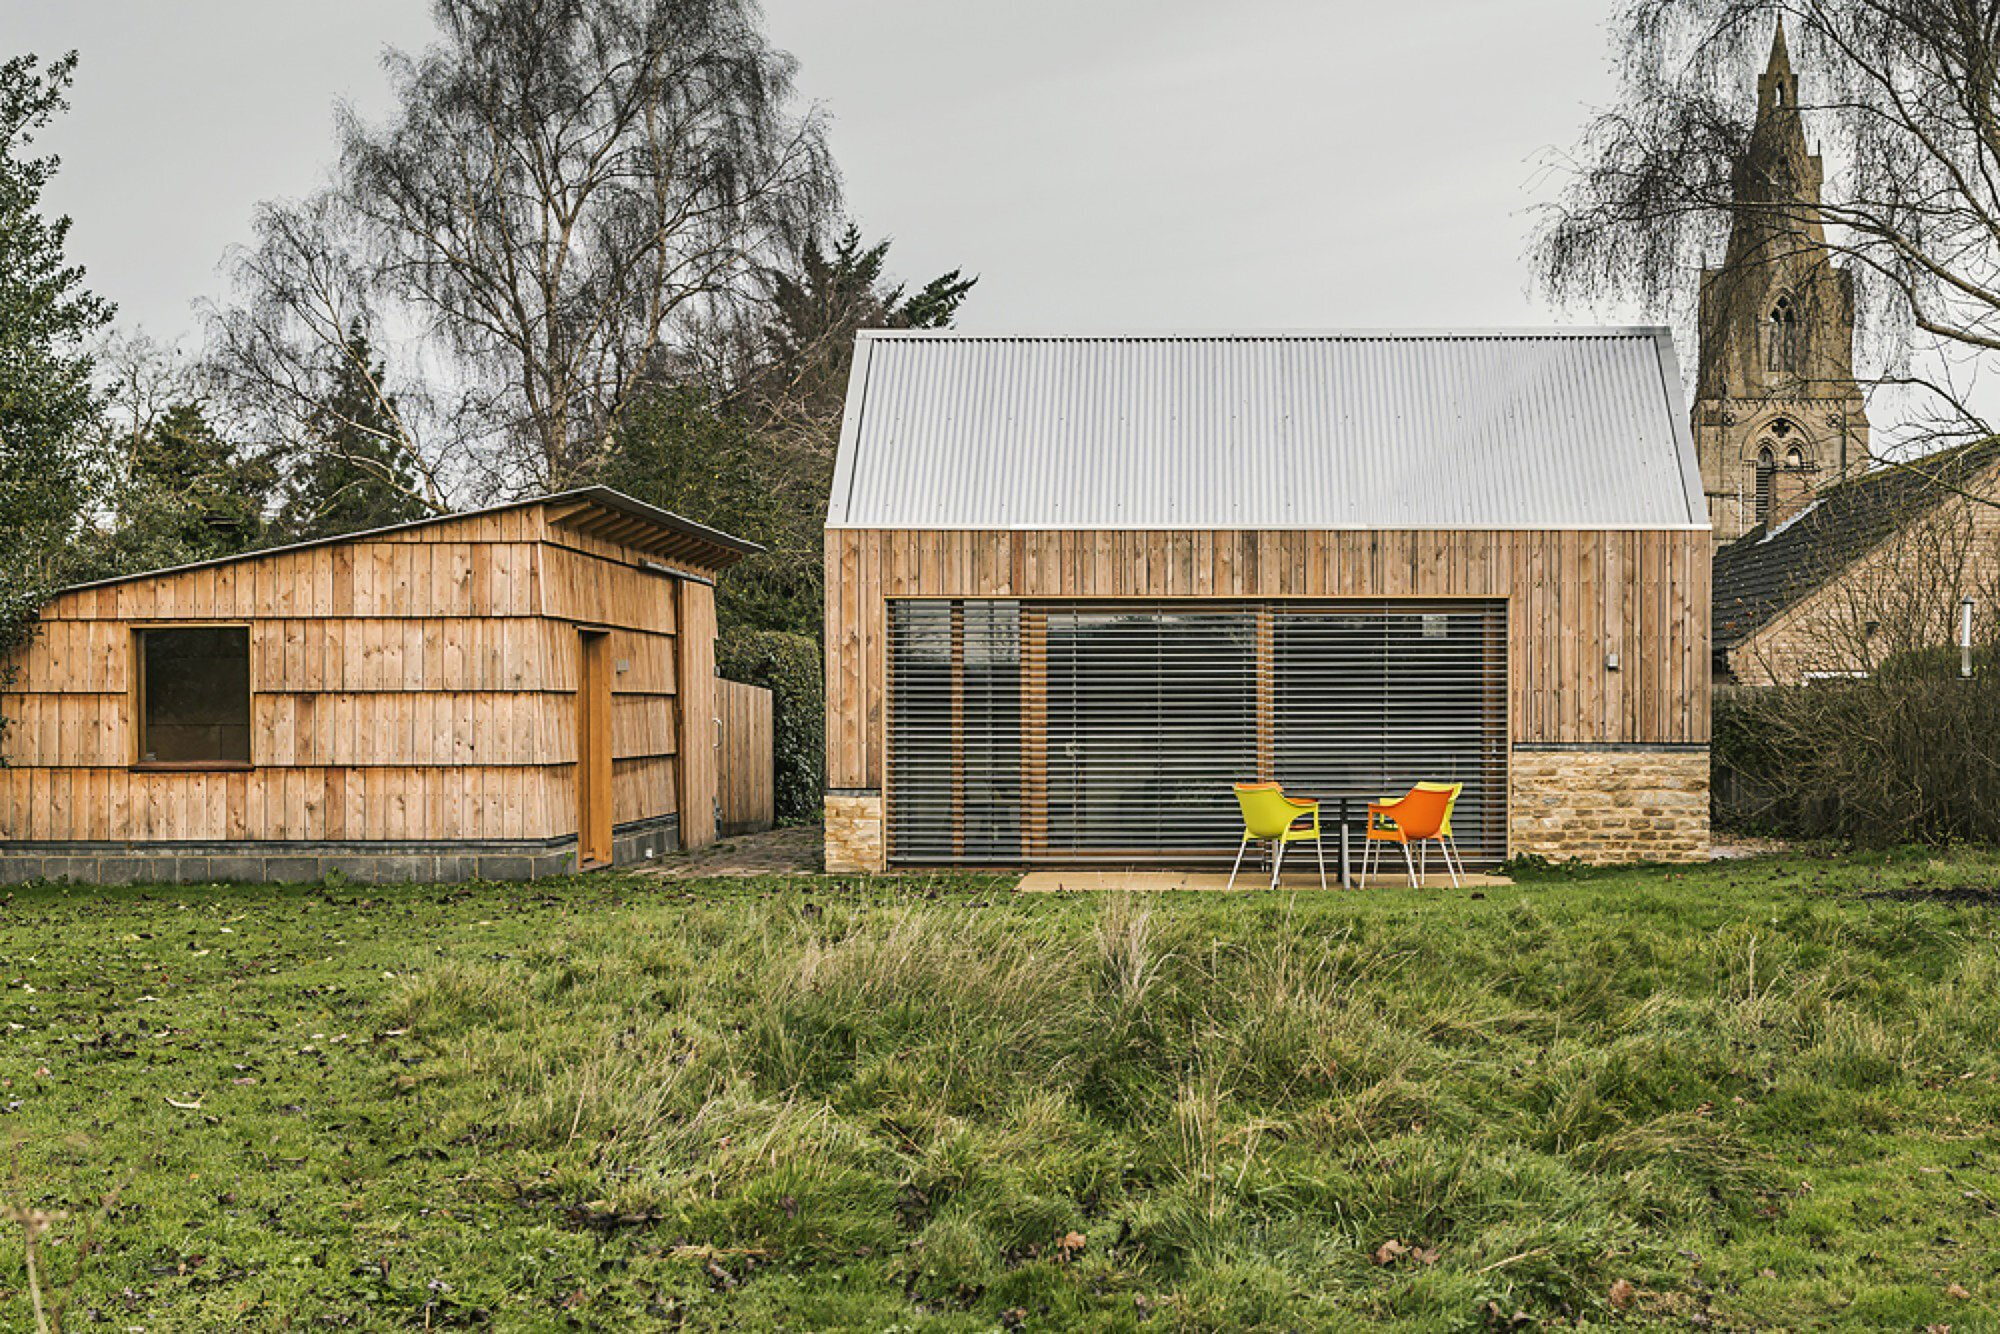 Garden Buildings Warmington - Ashworth Parkes Architects - UK - Exterior - Humble Homes